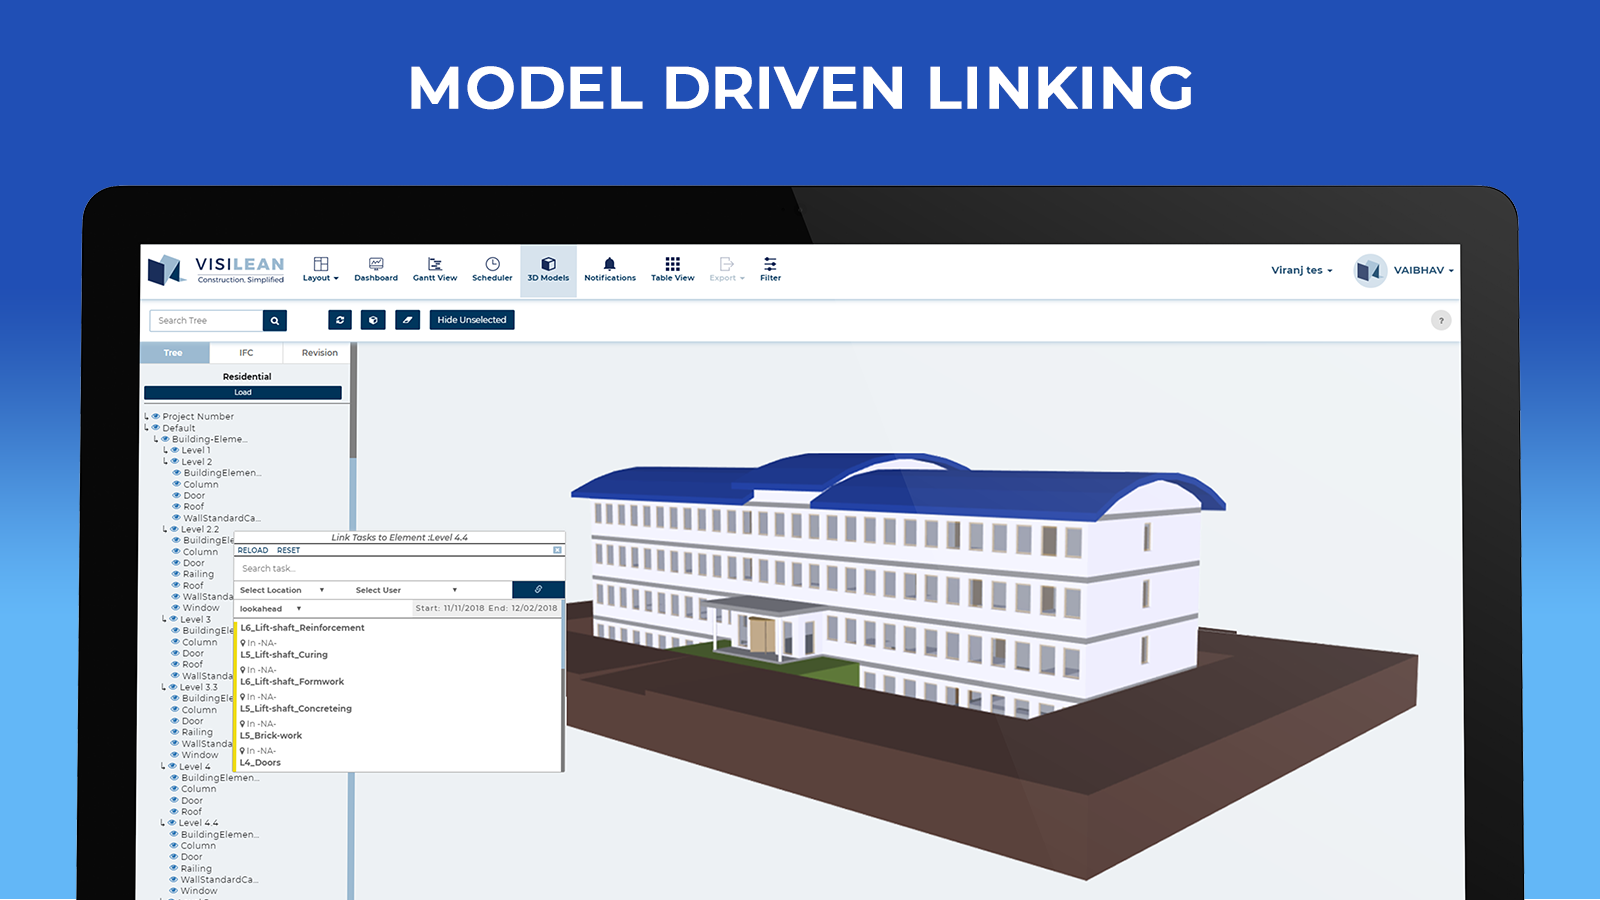 MODEL DRIVEN LINKING